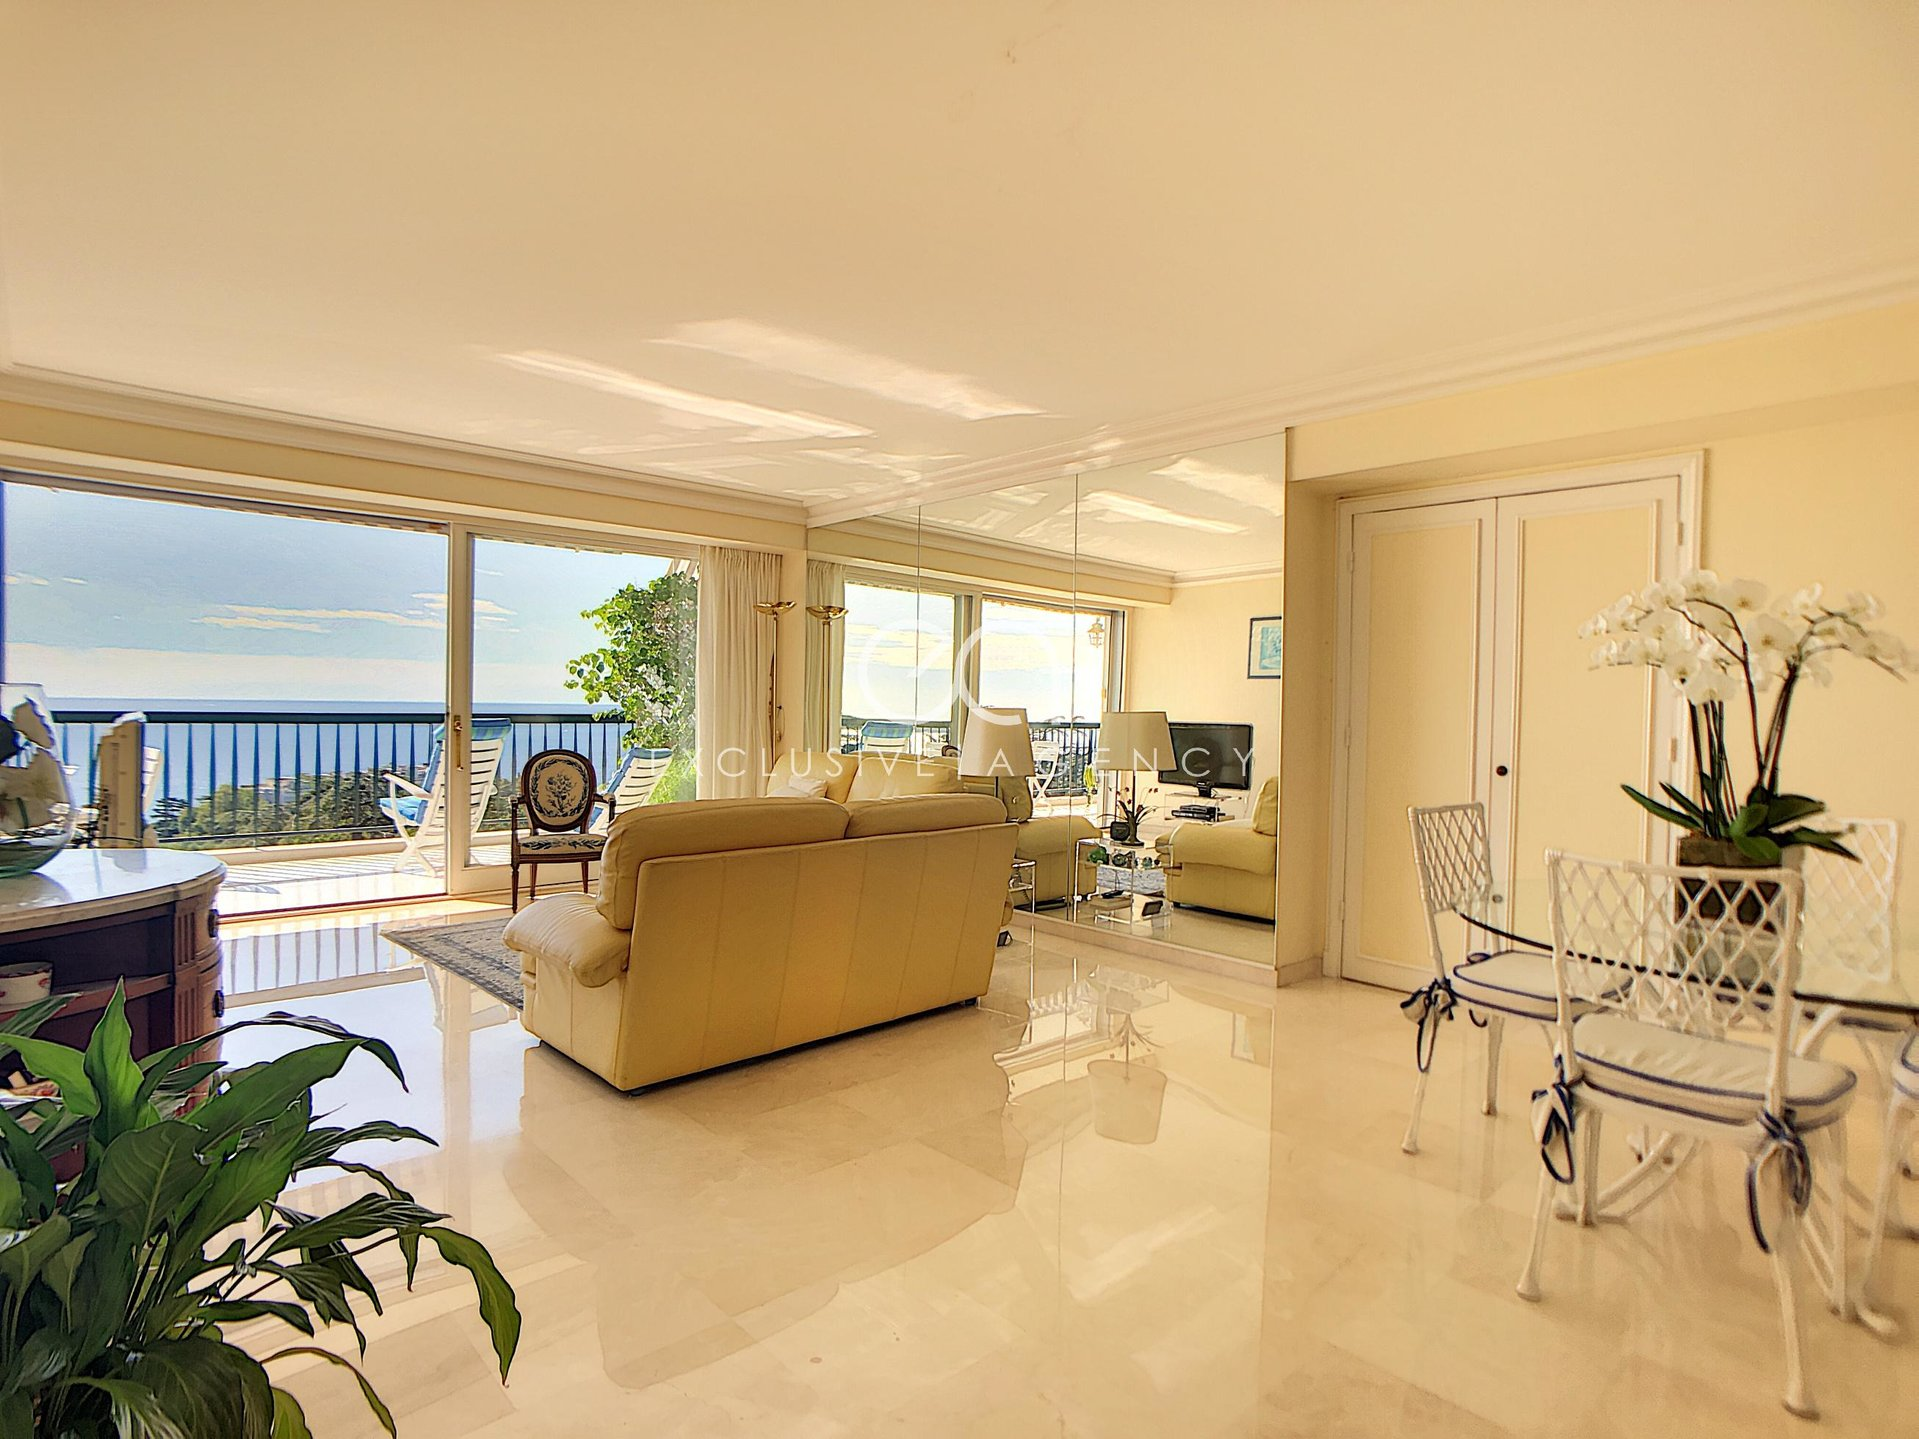 2-bedroom Apartment for Sale in Cannes Croix des Gardes  with panoramic sea view